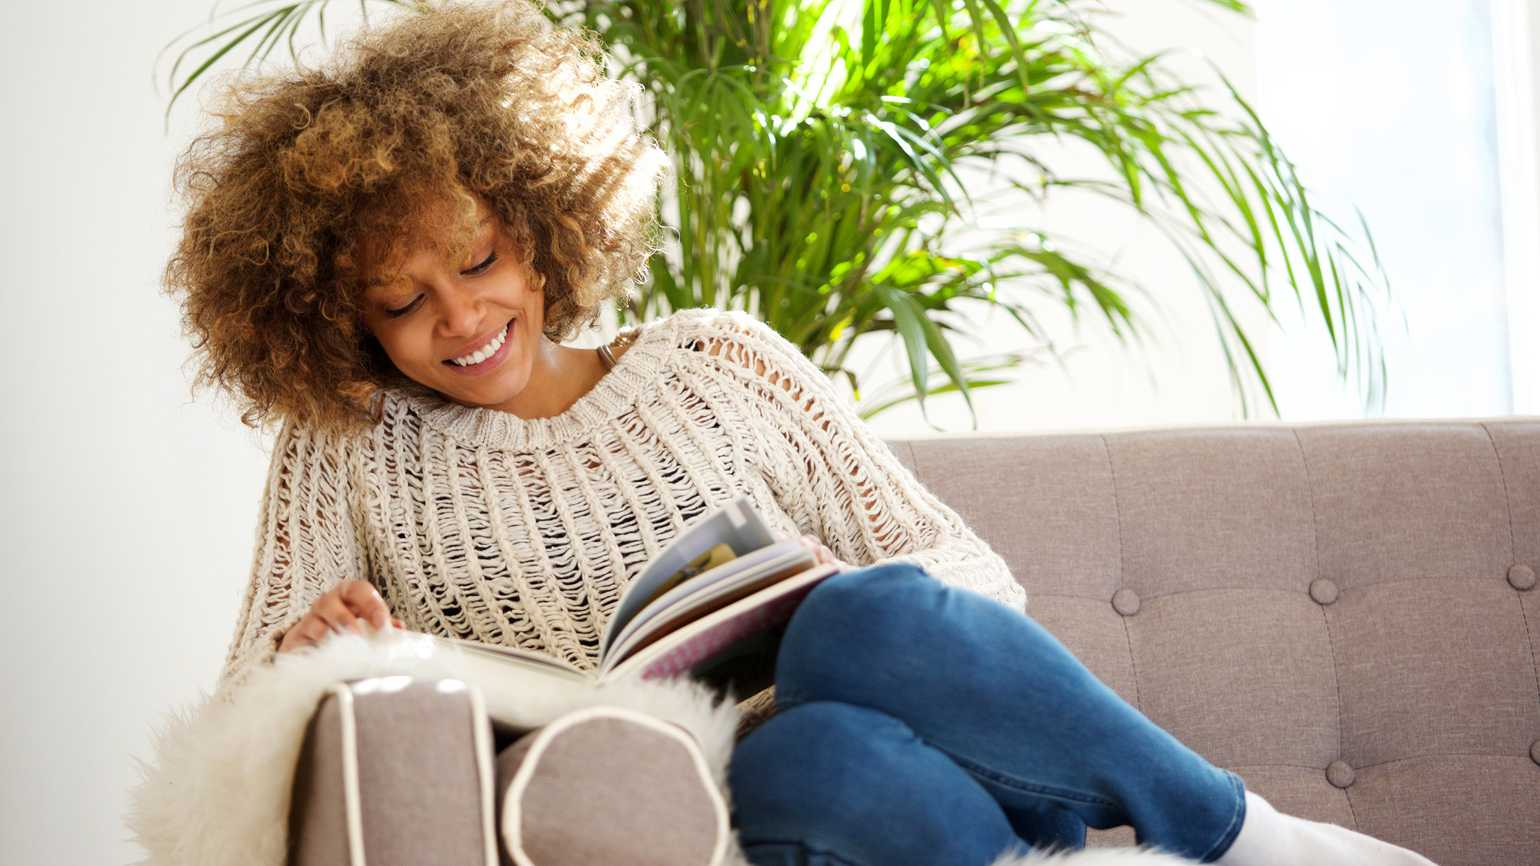 A woman on a sofa reading a book.